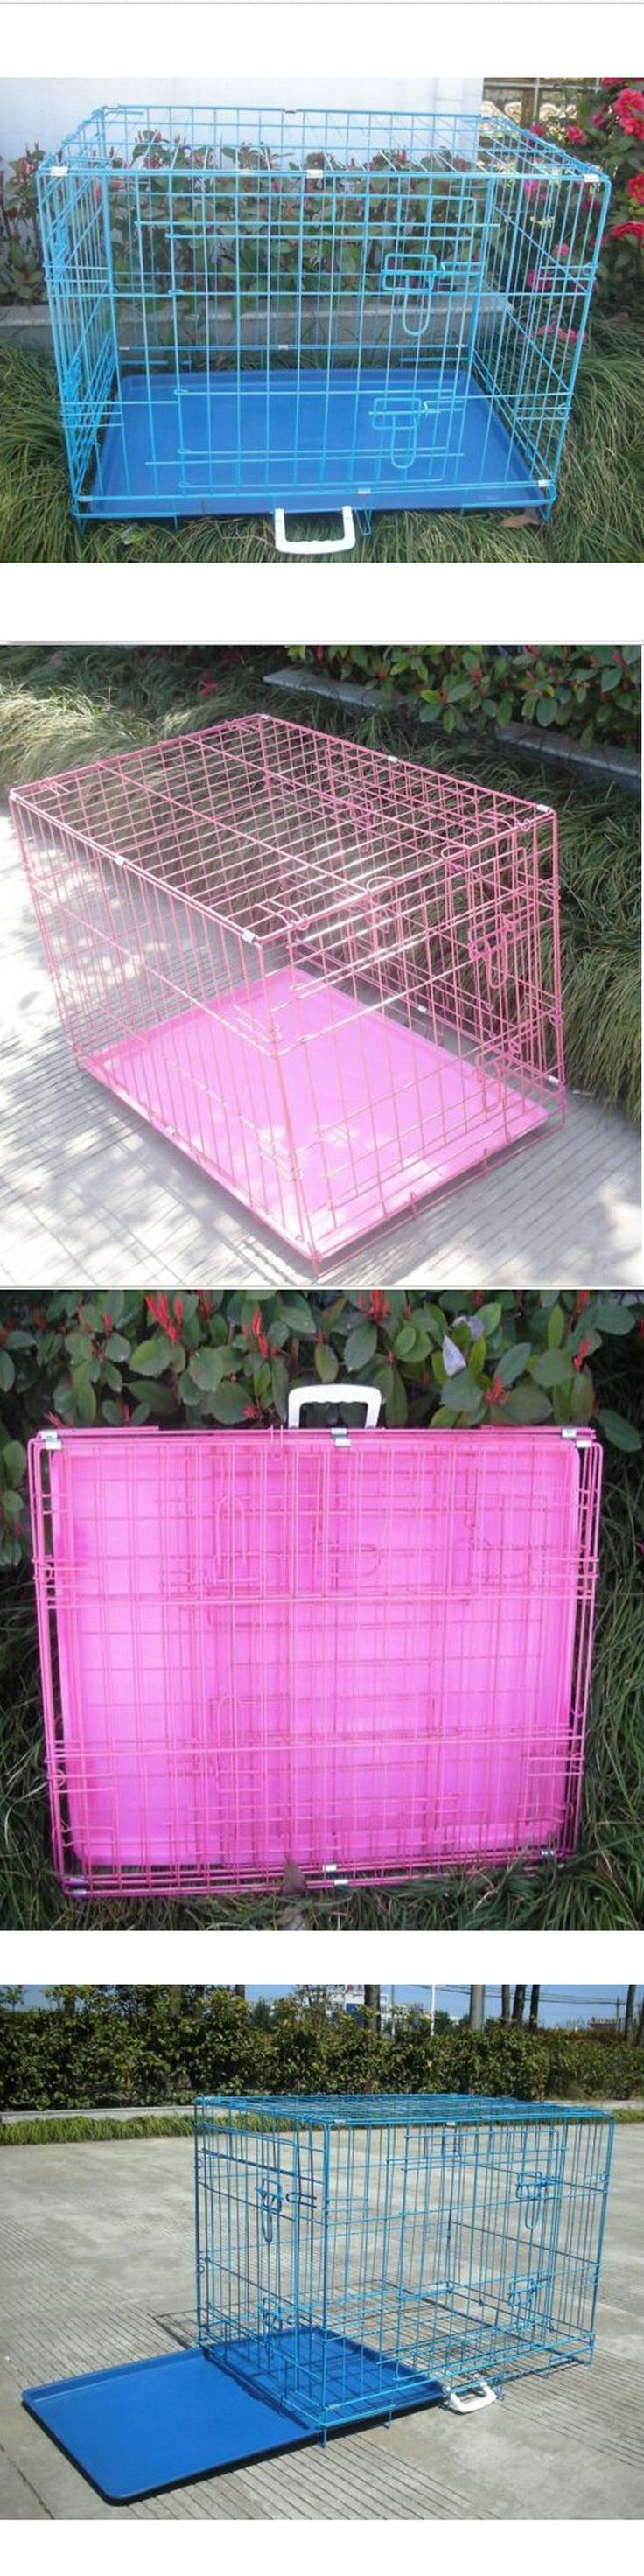 Cages and Crates 121851: Usa Pink Blue Black Folding Dog Crate Cage Kennel Two Door Abs Tray 24-48 BUY IT NOW ONLY: $32.99